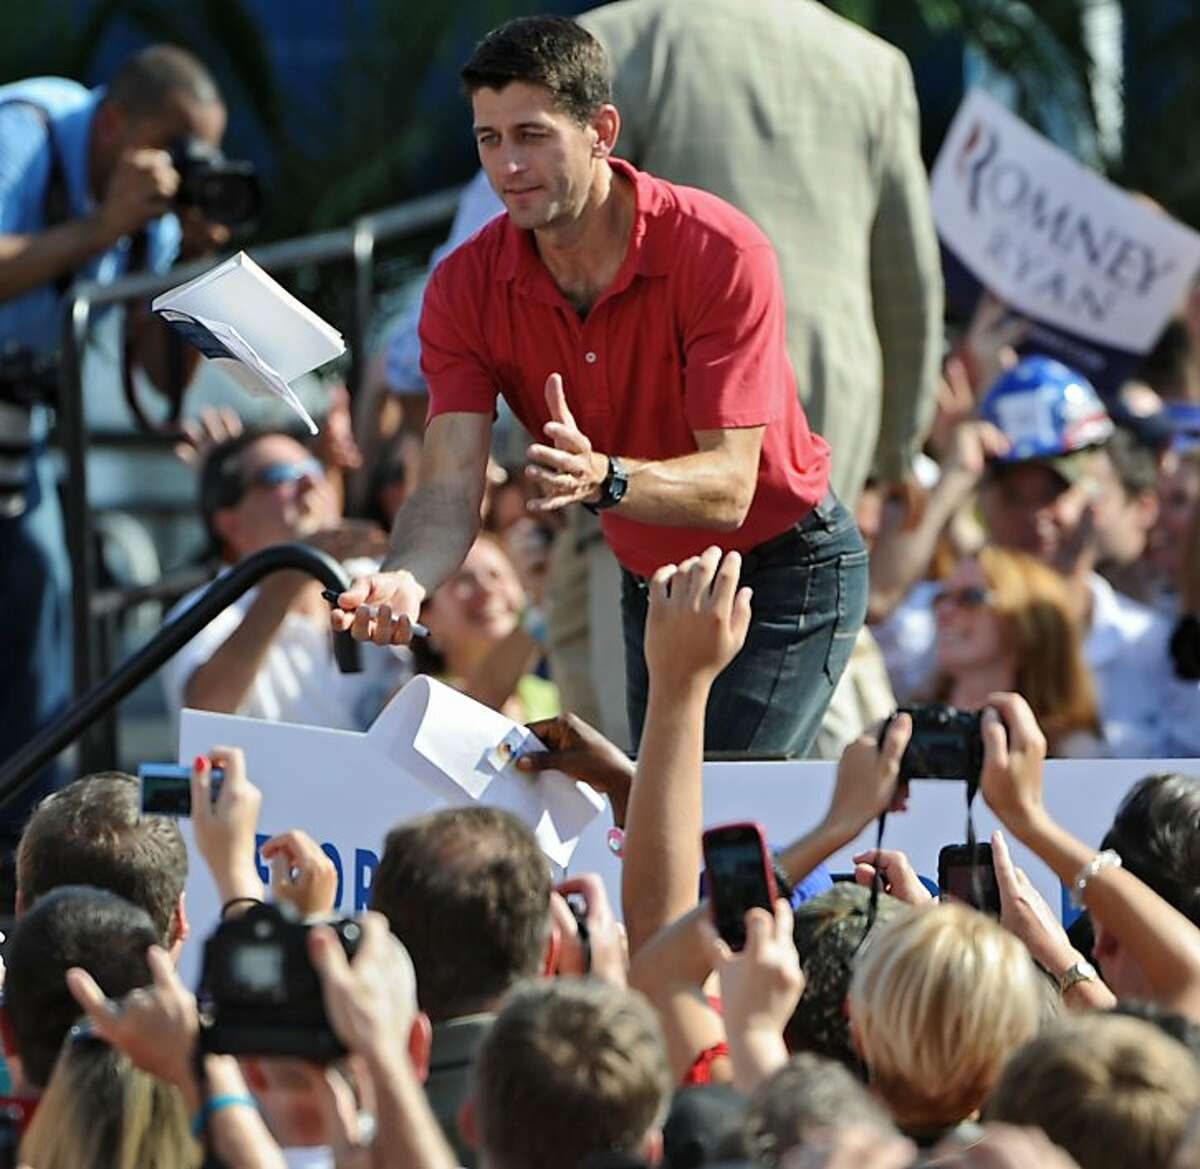 A member of the audience tosses a book to vice presidential candidate, Rep. Paul Ryan, R-Wis. for his autograph as the rally ends, Saturday, Sept. 1, 2012 in Jacksonville, Fla. (AP Photo/The Florida Times-Union, Bob Mack) TV OUT; MAGS OUT